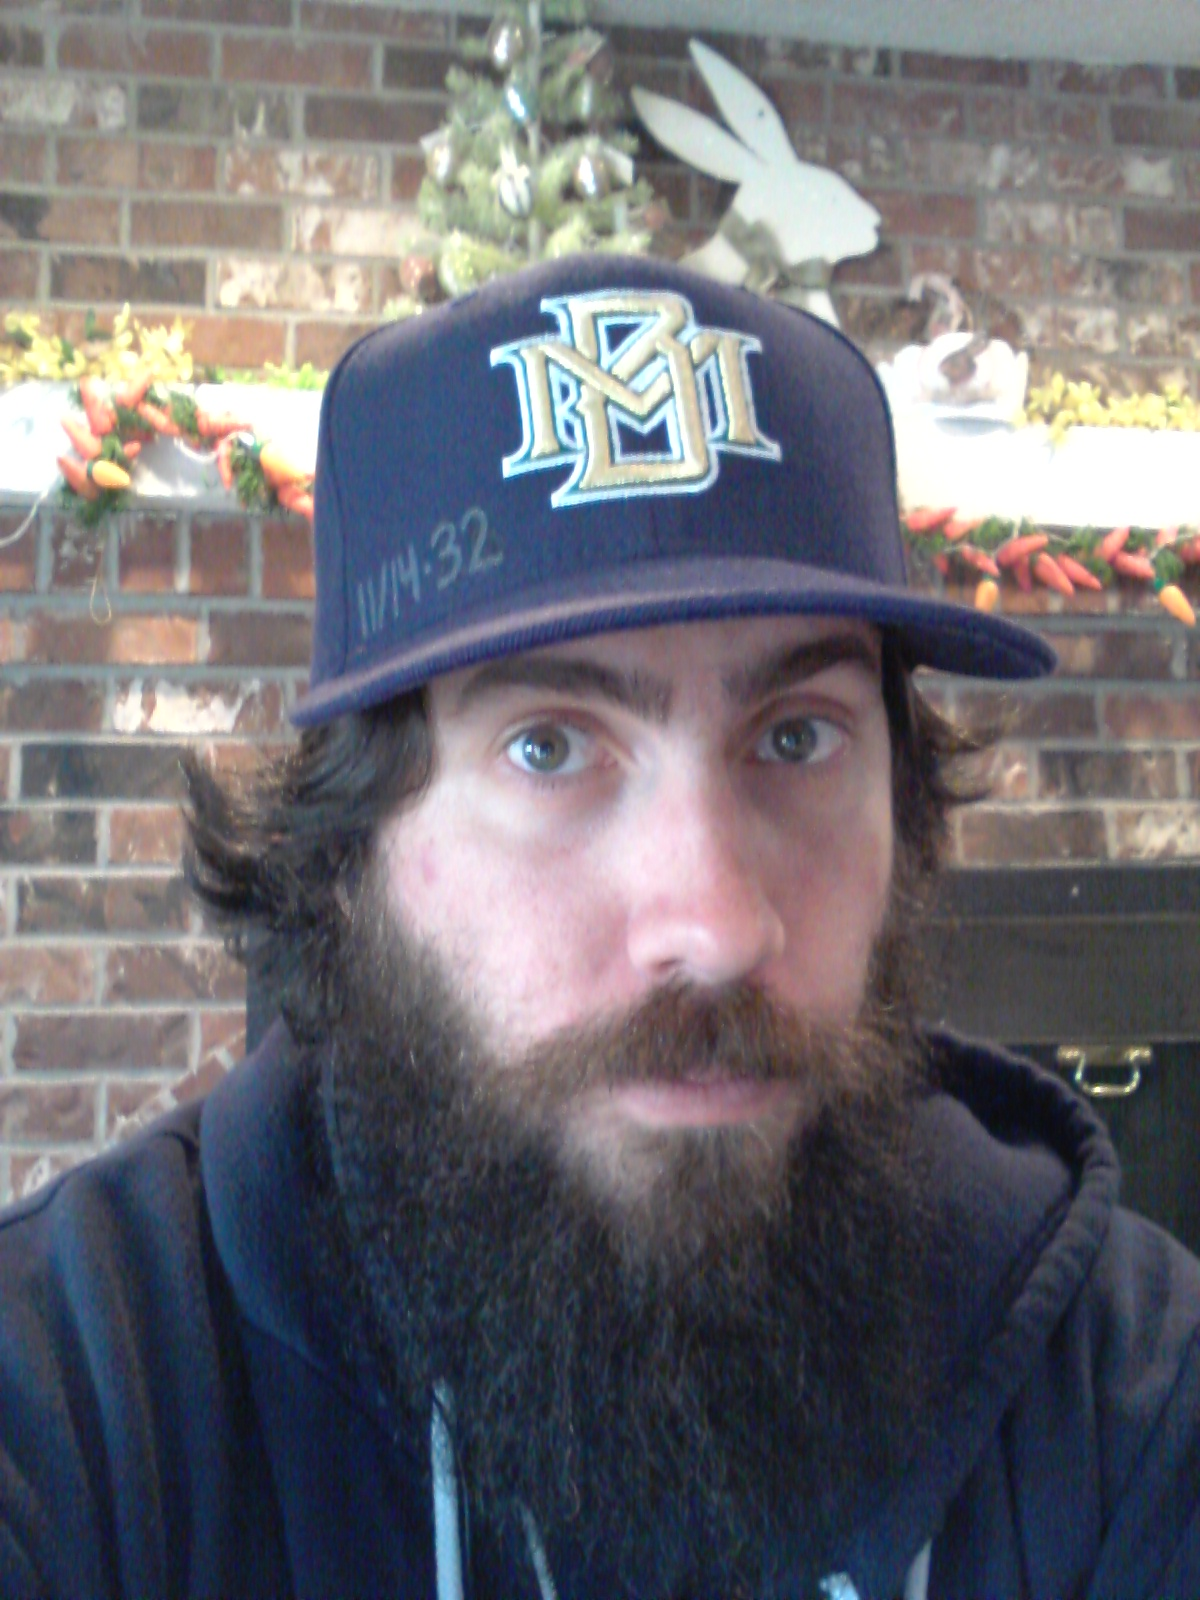 9d32f5e32 Hats and Tats: A Lifestyle: April 9- Milwaukee Brewers